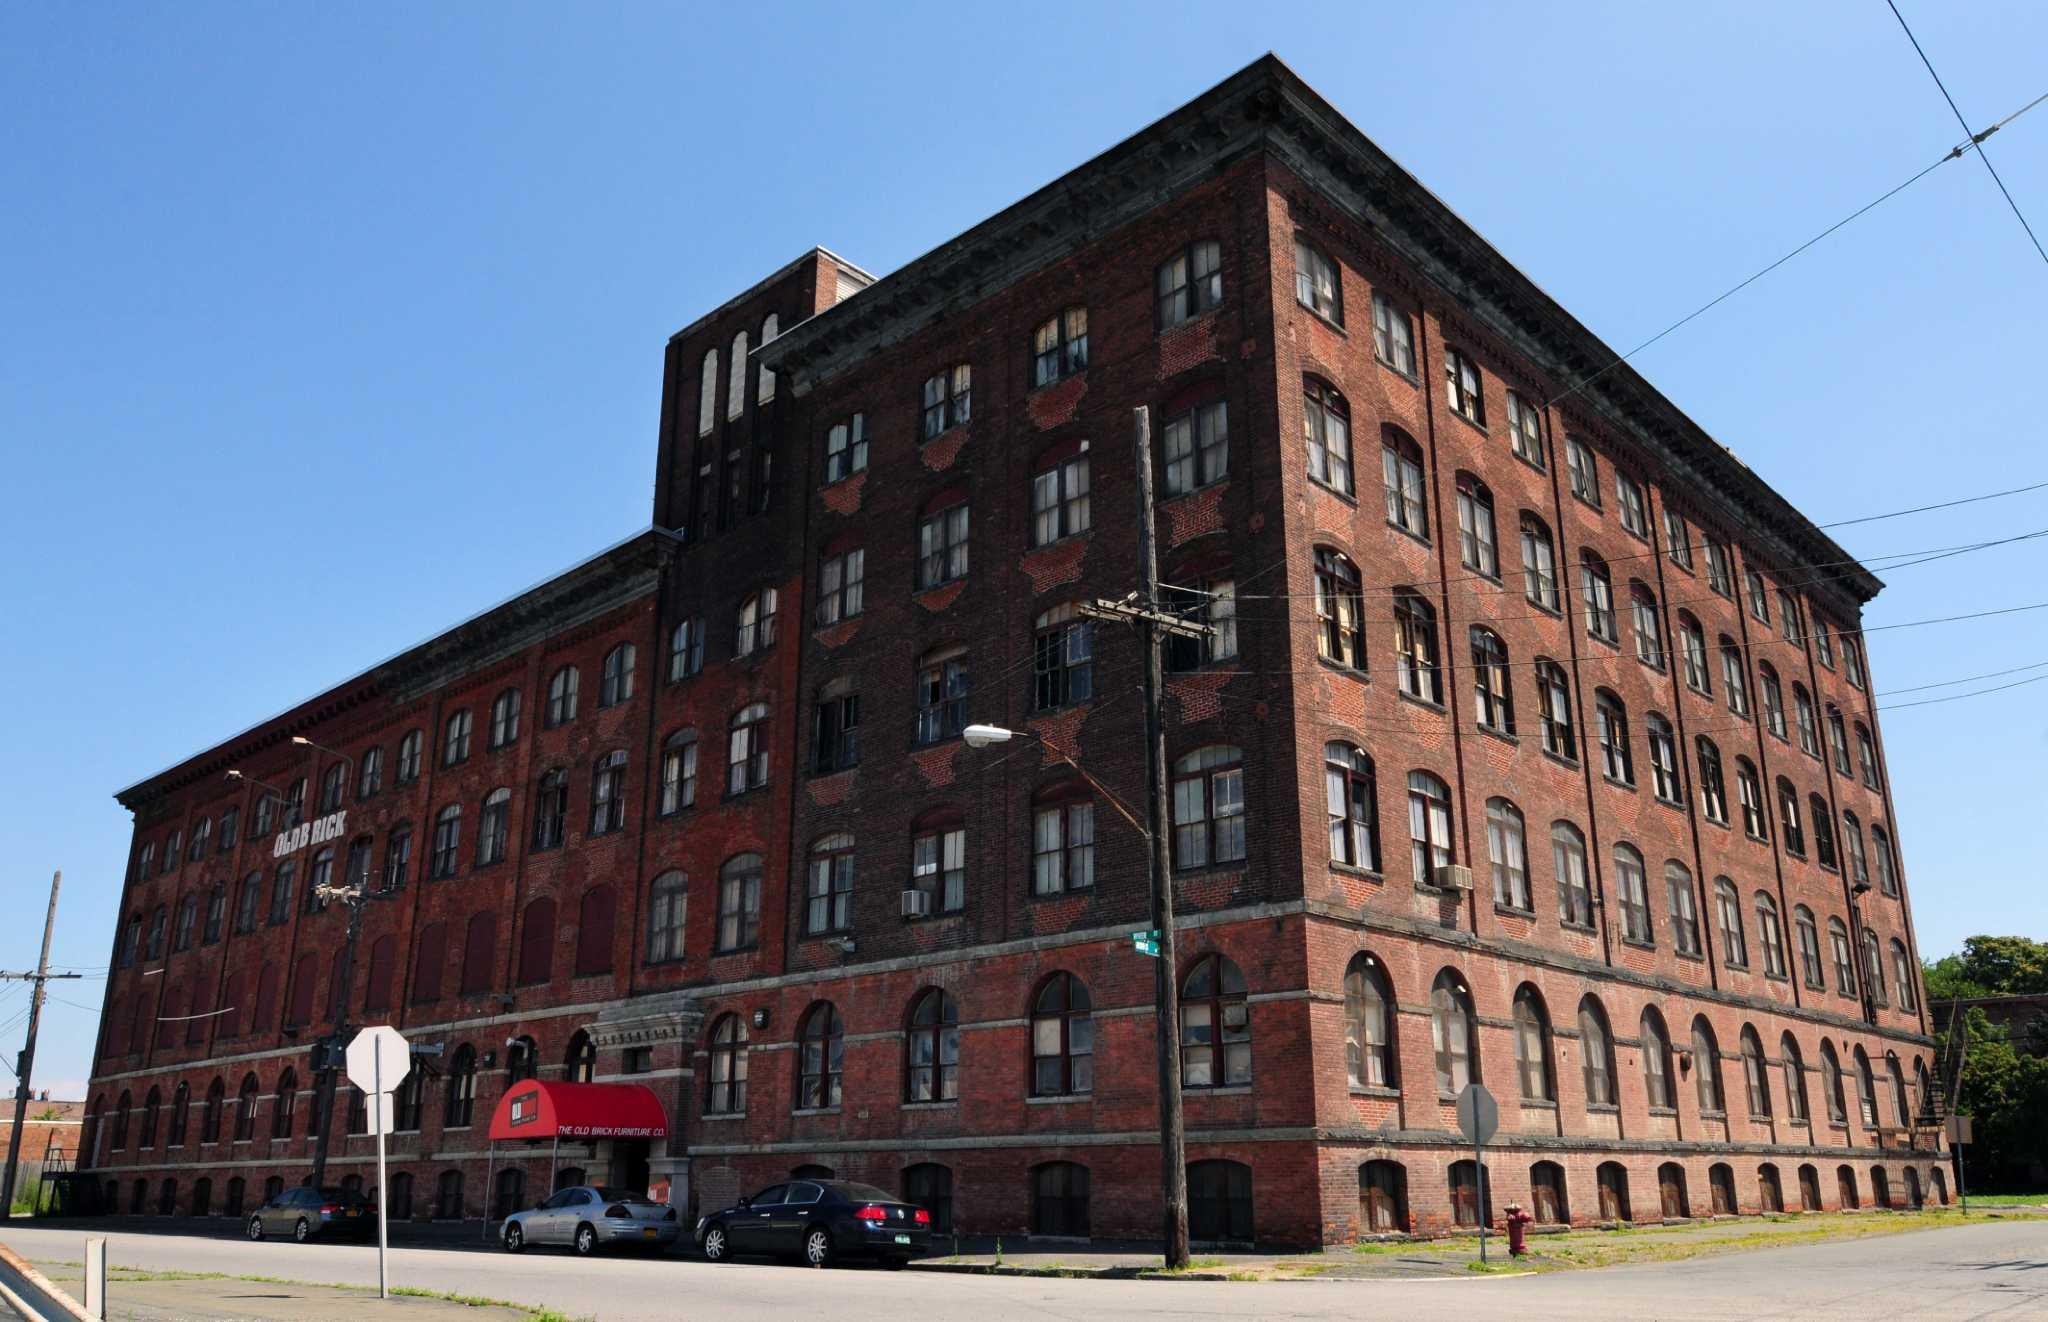 Troy Building Proposed For Historic Sites Listing